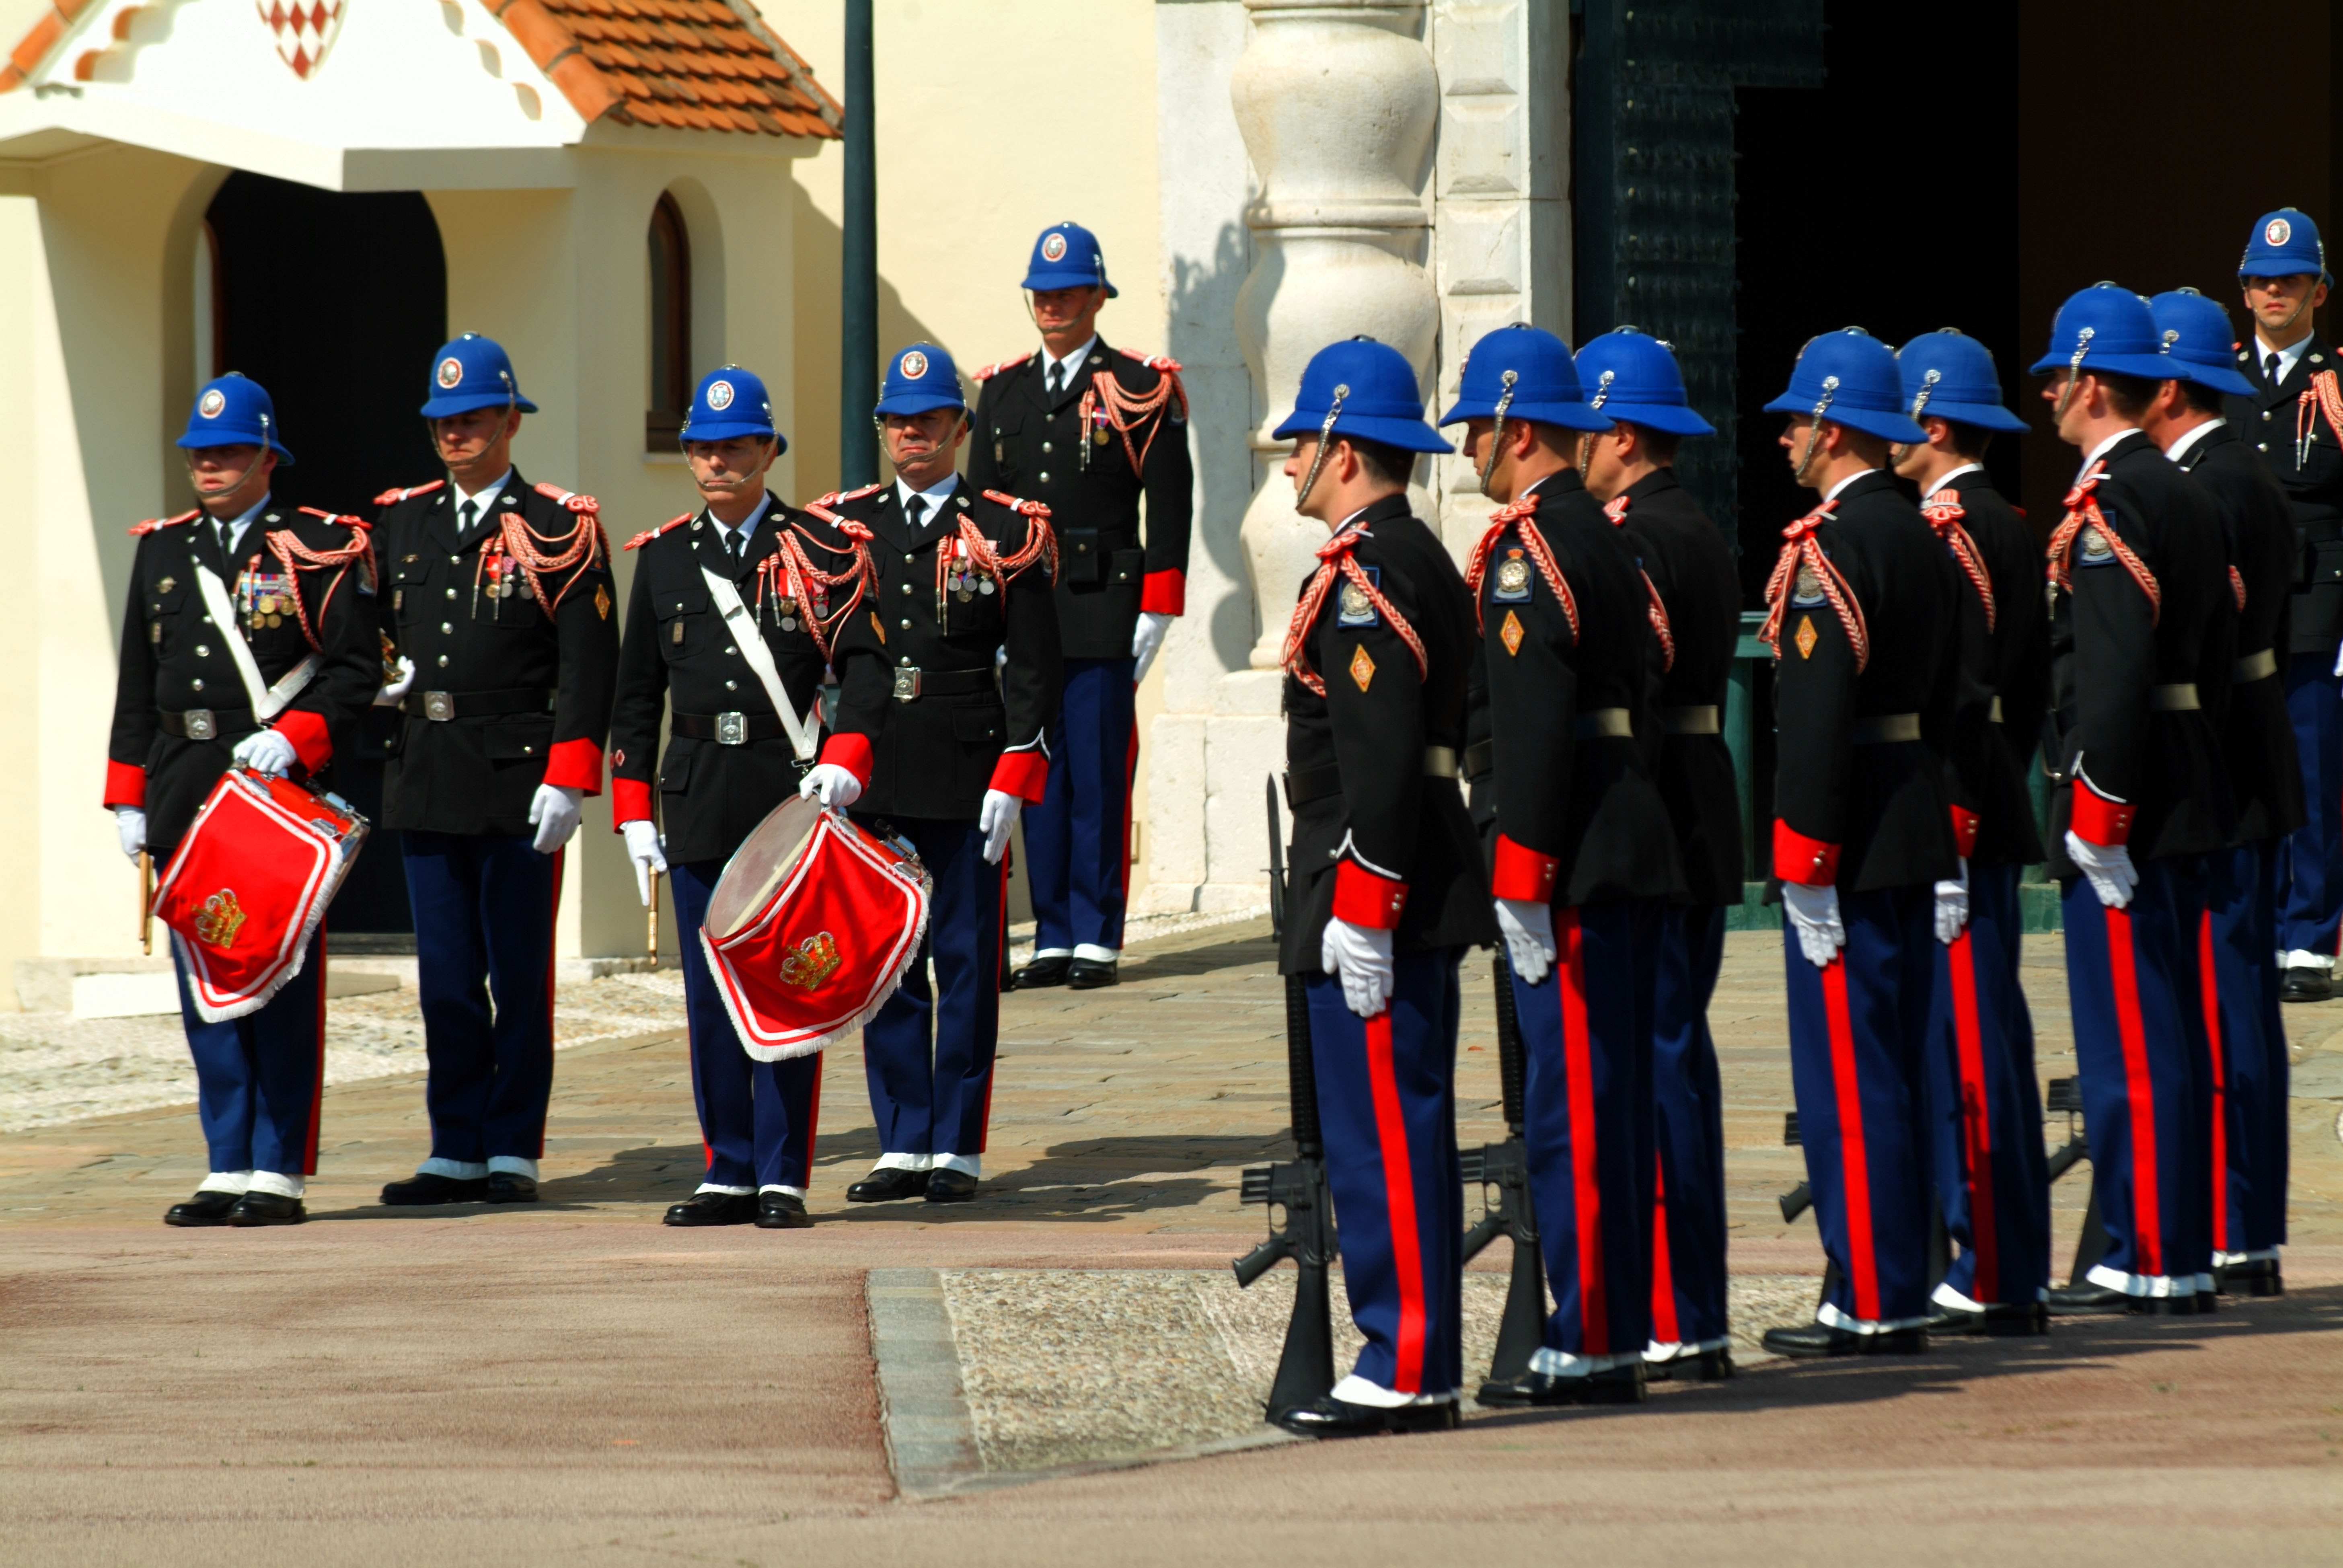 monaco principality cote d azur france south of france French changing of the guard soldiers police military men male